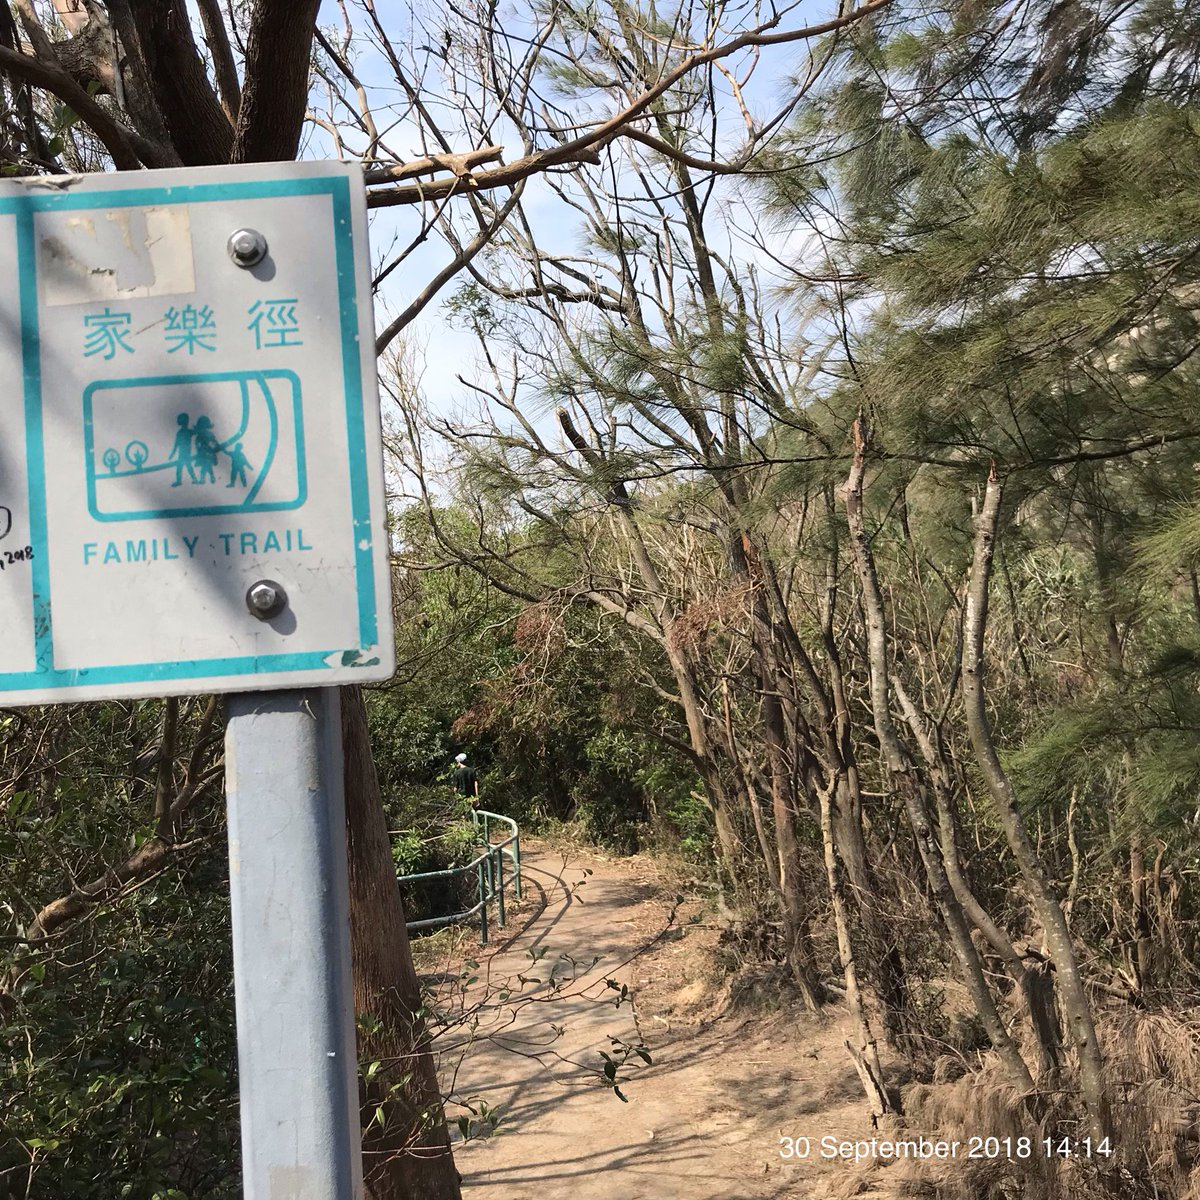 Family trail for the length of Lamma island: well maintained, clean, & heavily used